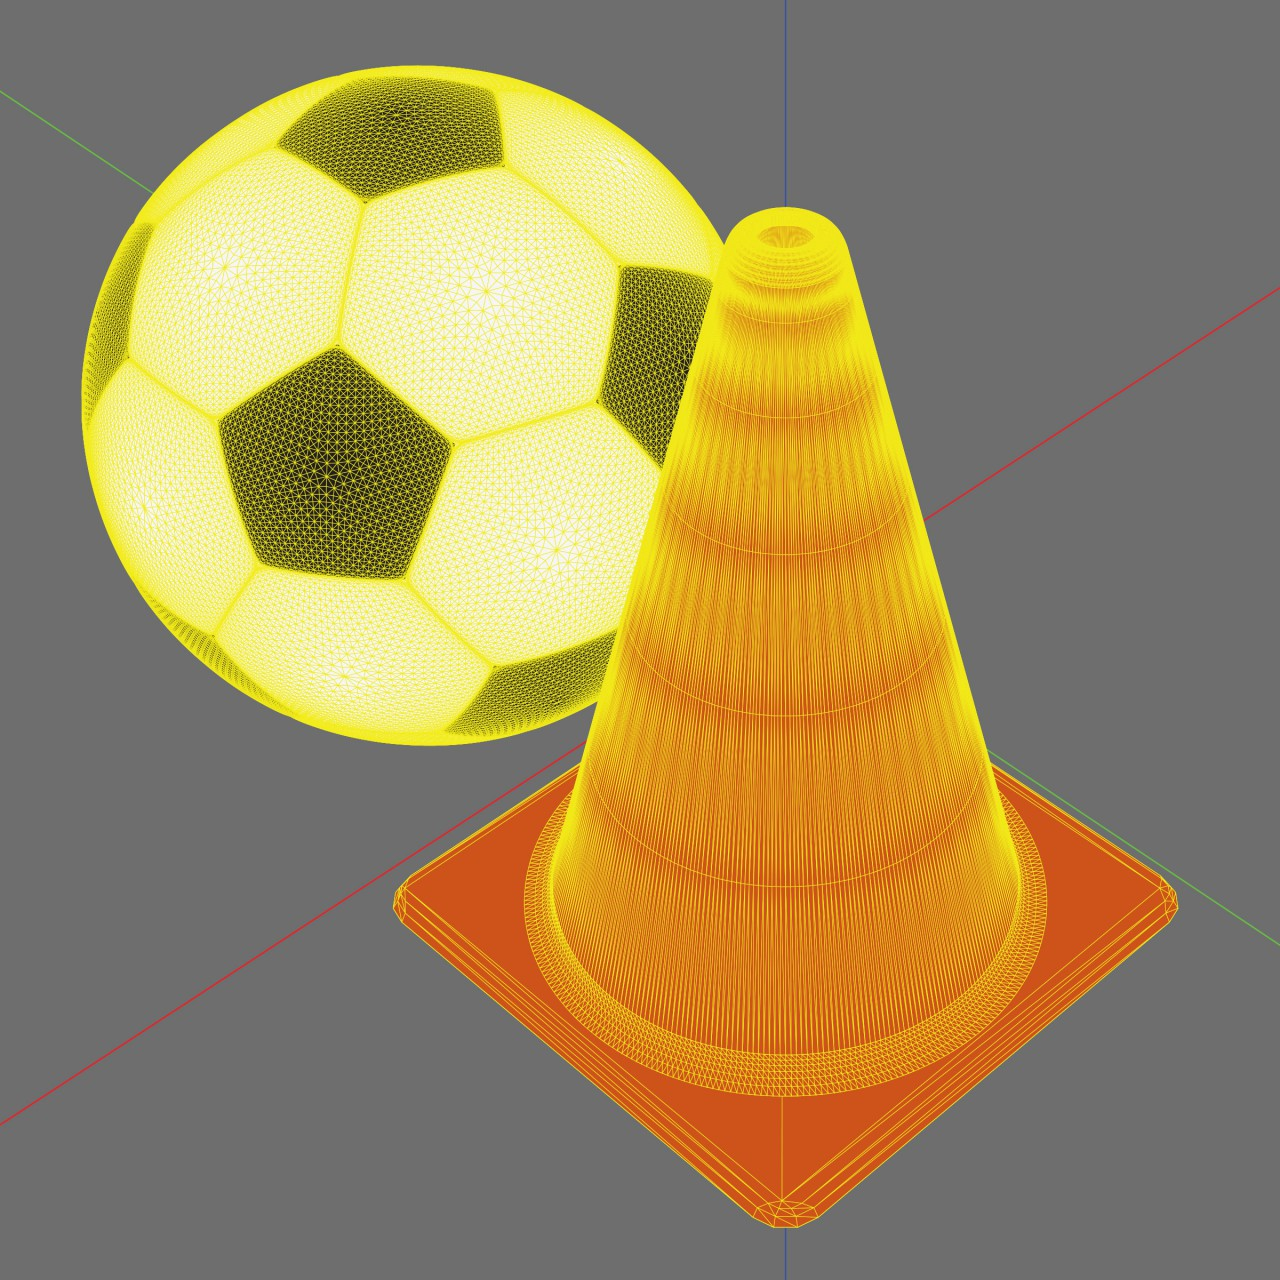 Image of Downtown Soccer Toronto logo 3d model